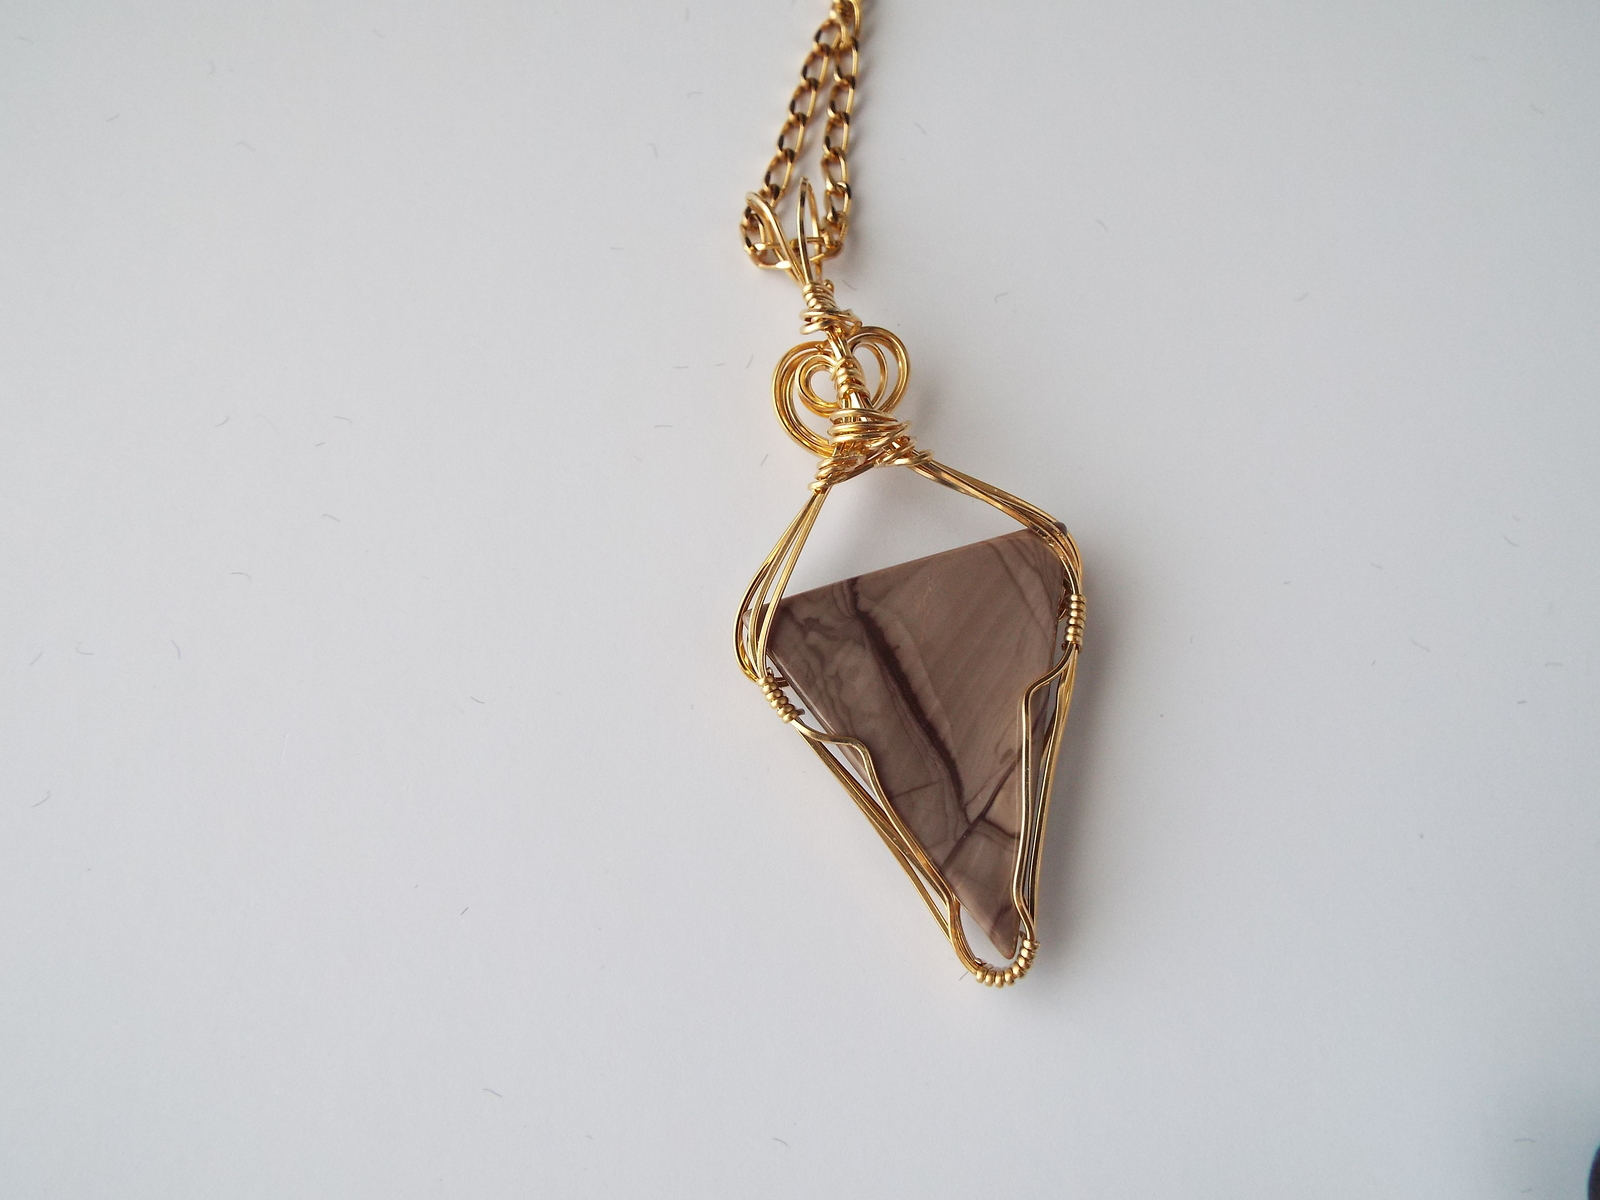 Triangular Jasper Pendant 14K rolled Gold Sculpture